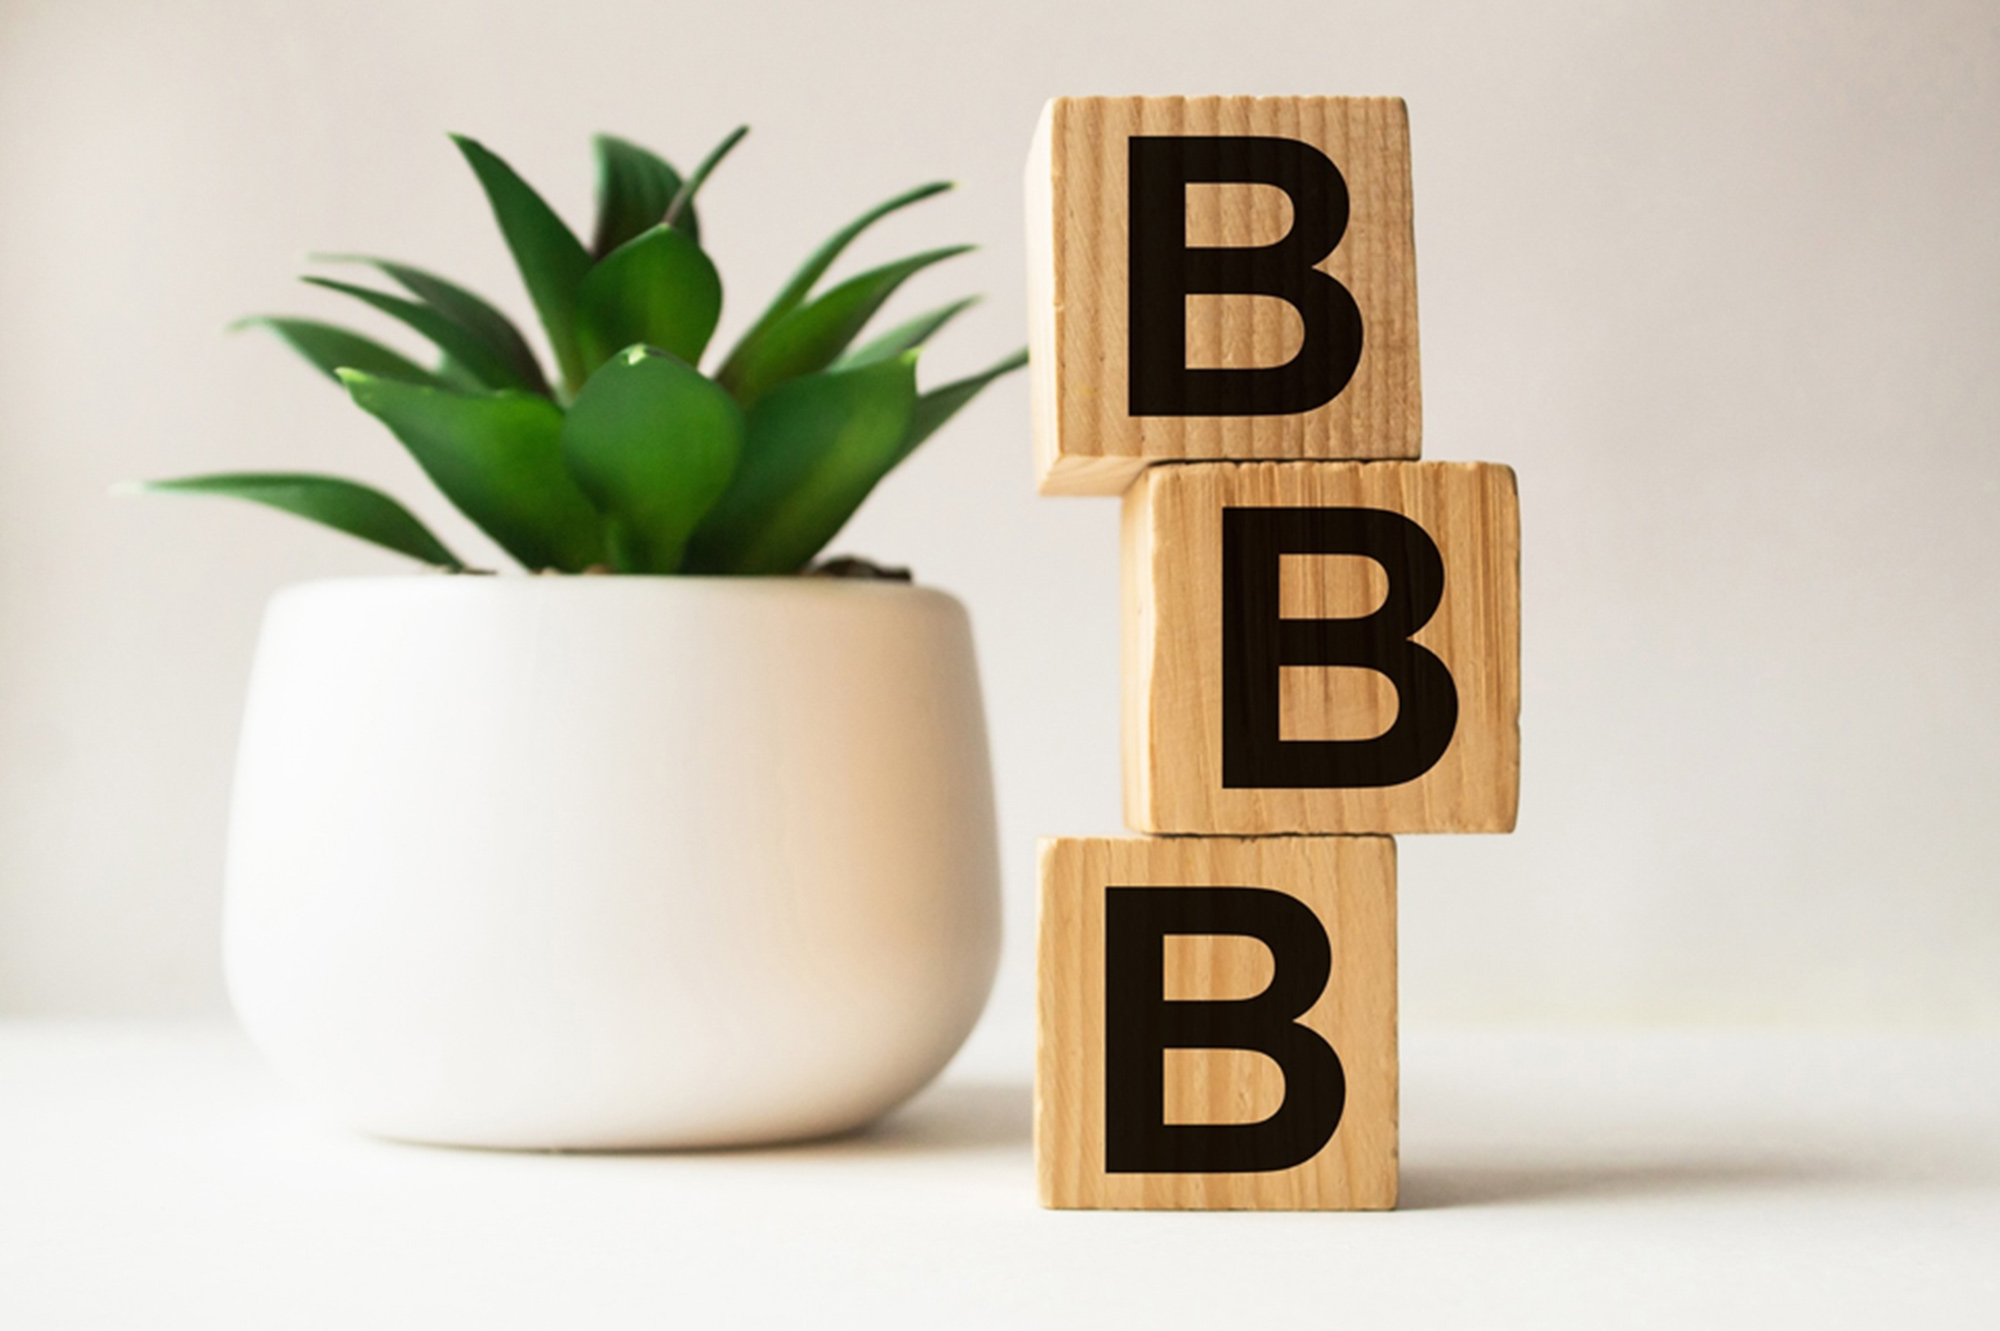 BBB Accreditation: Is It Worth It? Image